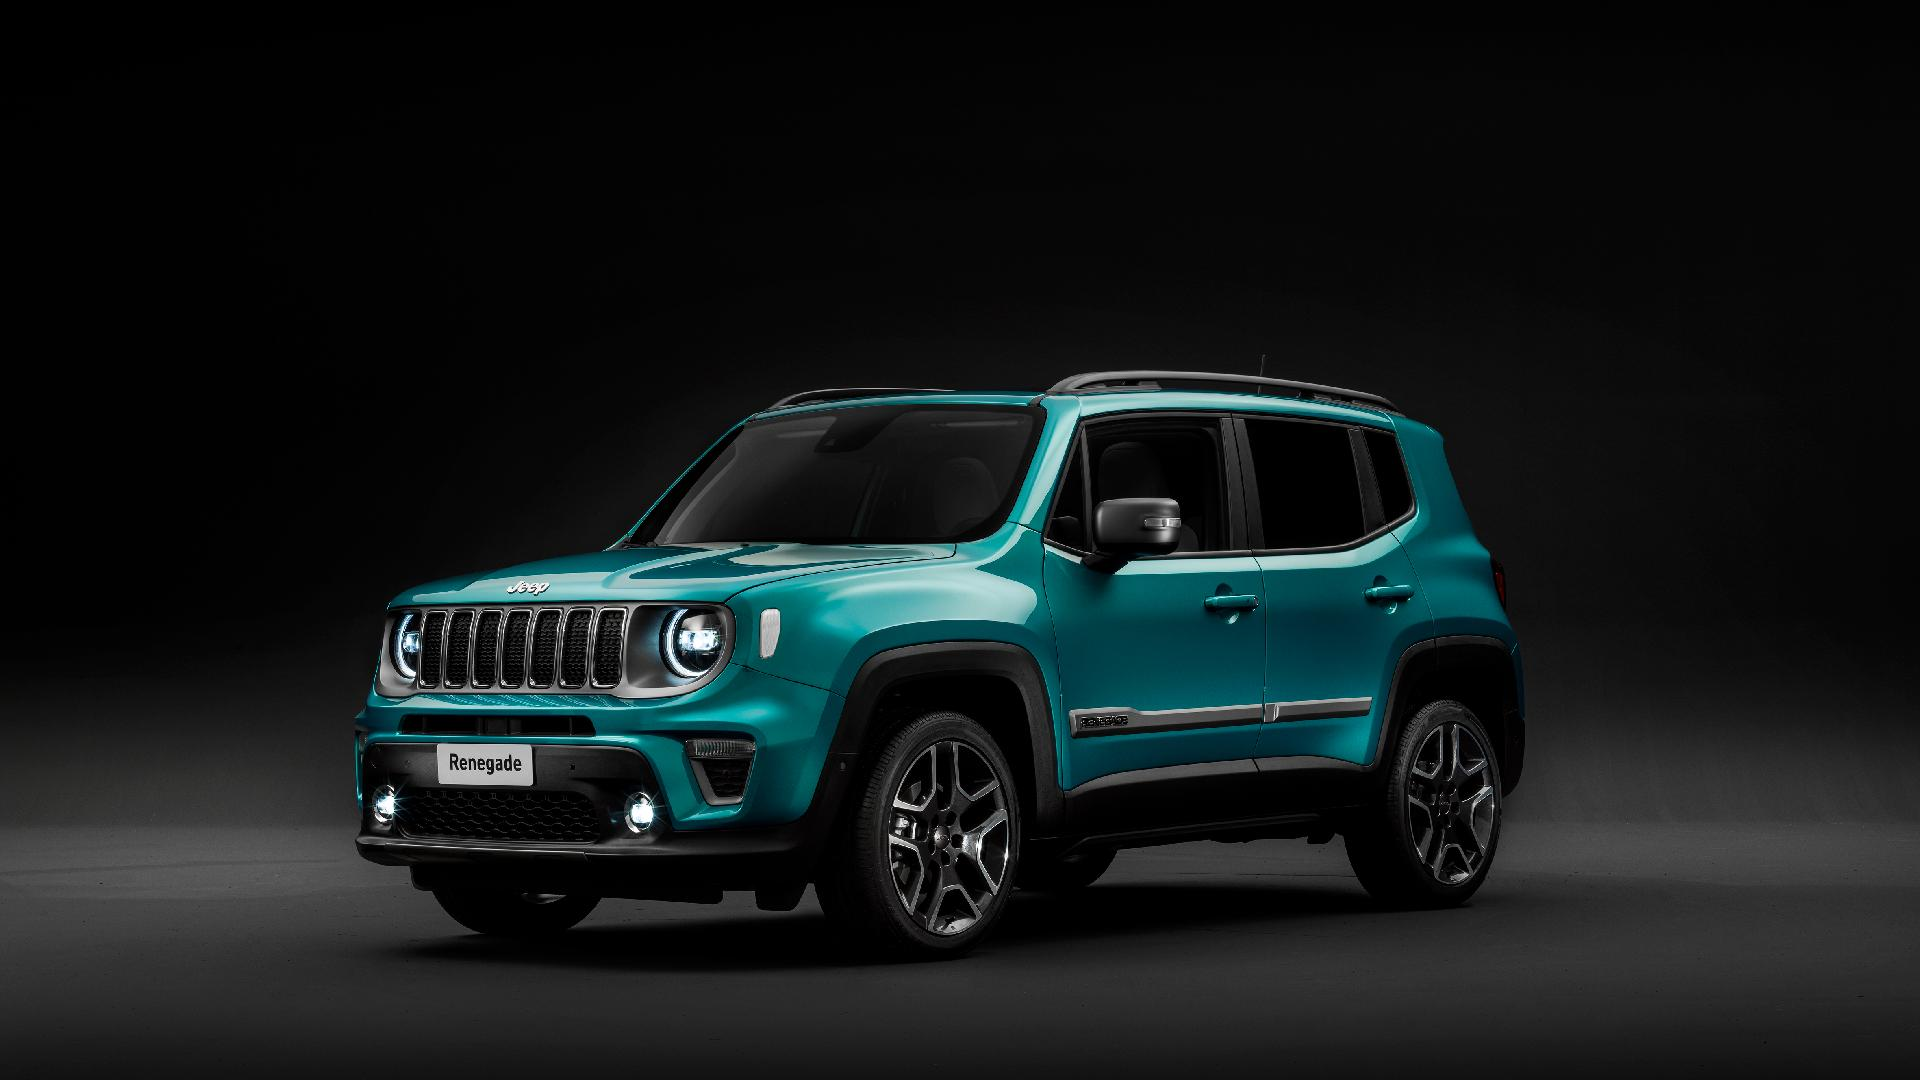 JEEP Renegade 1.3 GSE T4 Turbo Upland 4x4 S&S aut